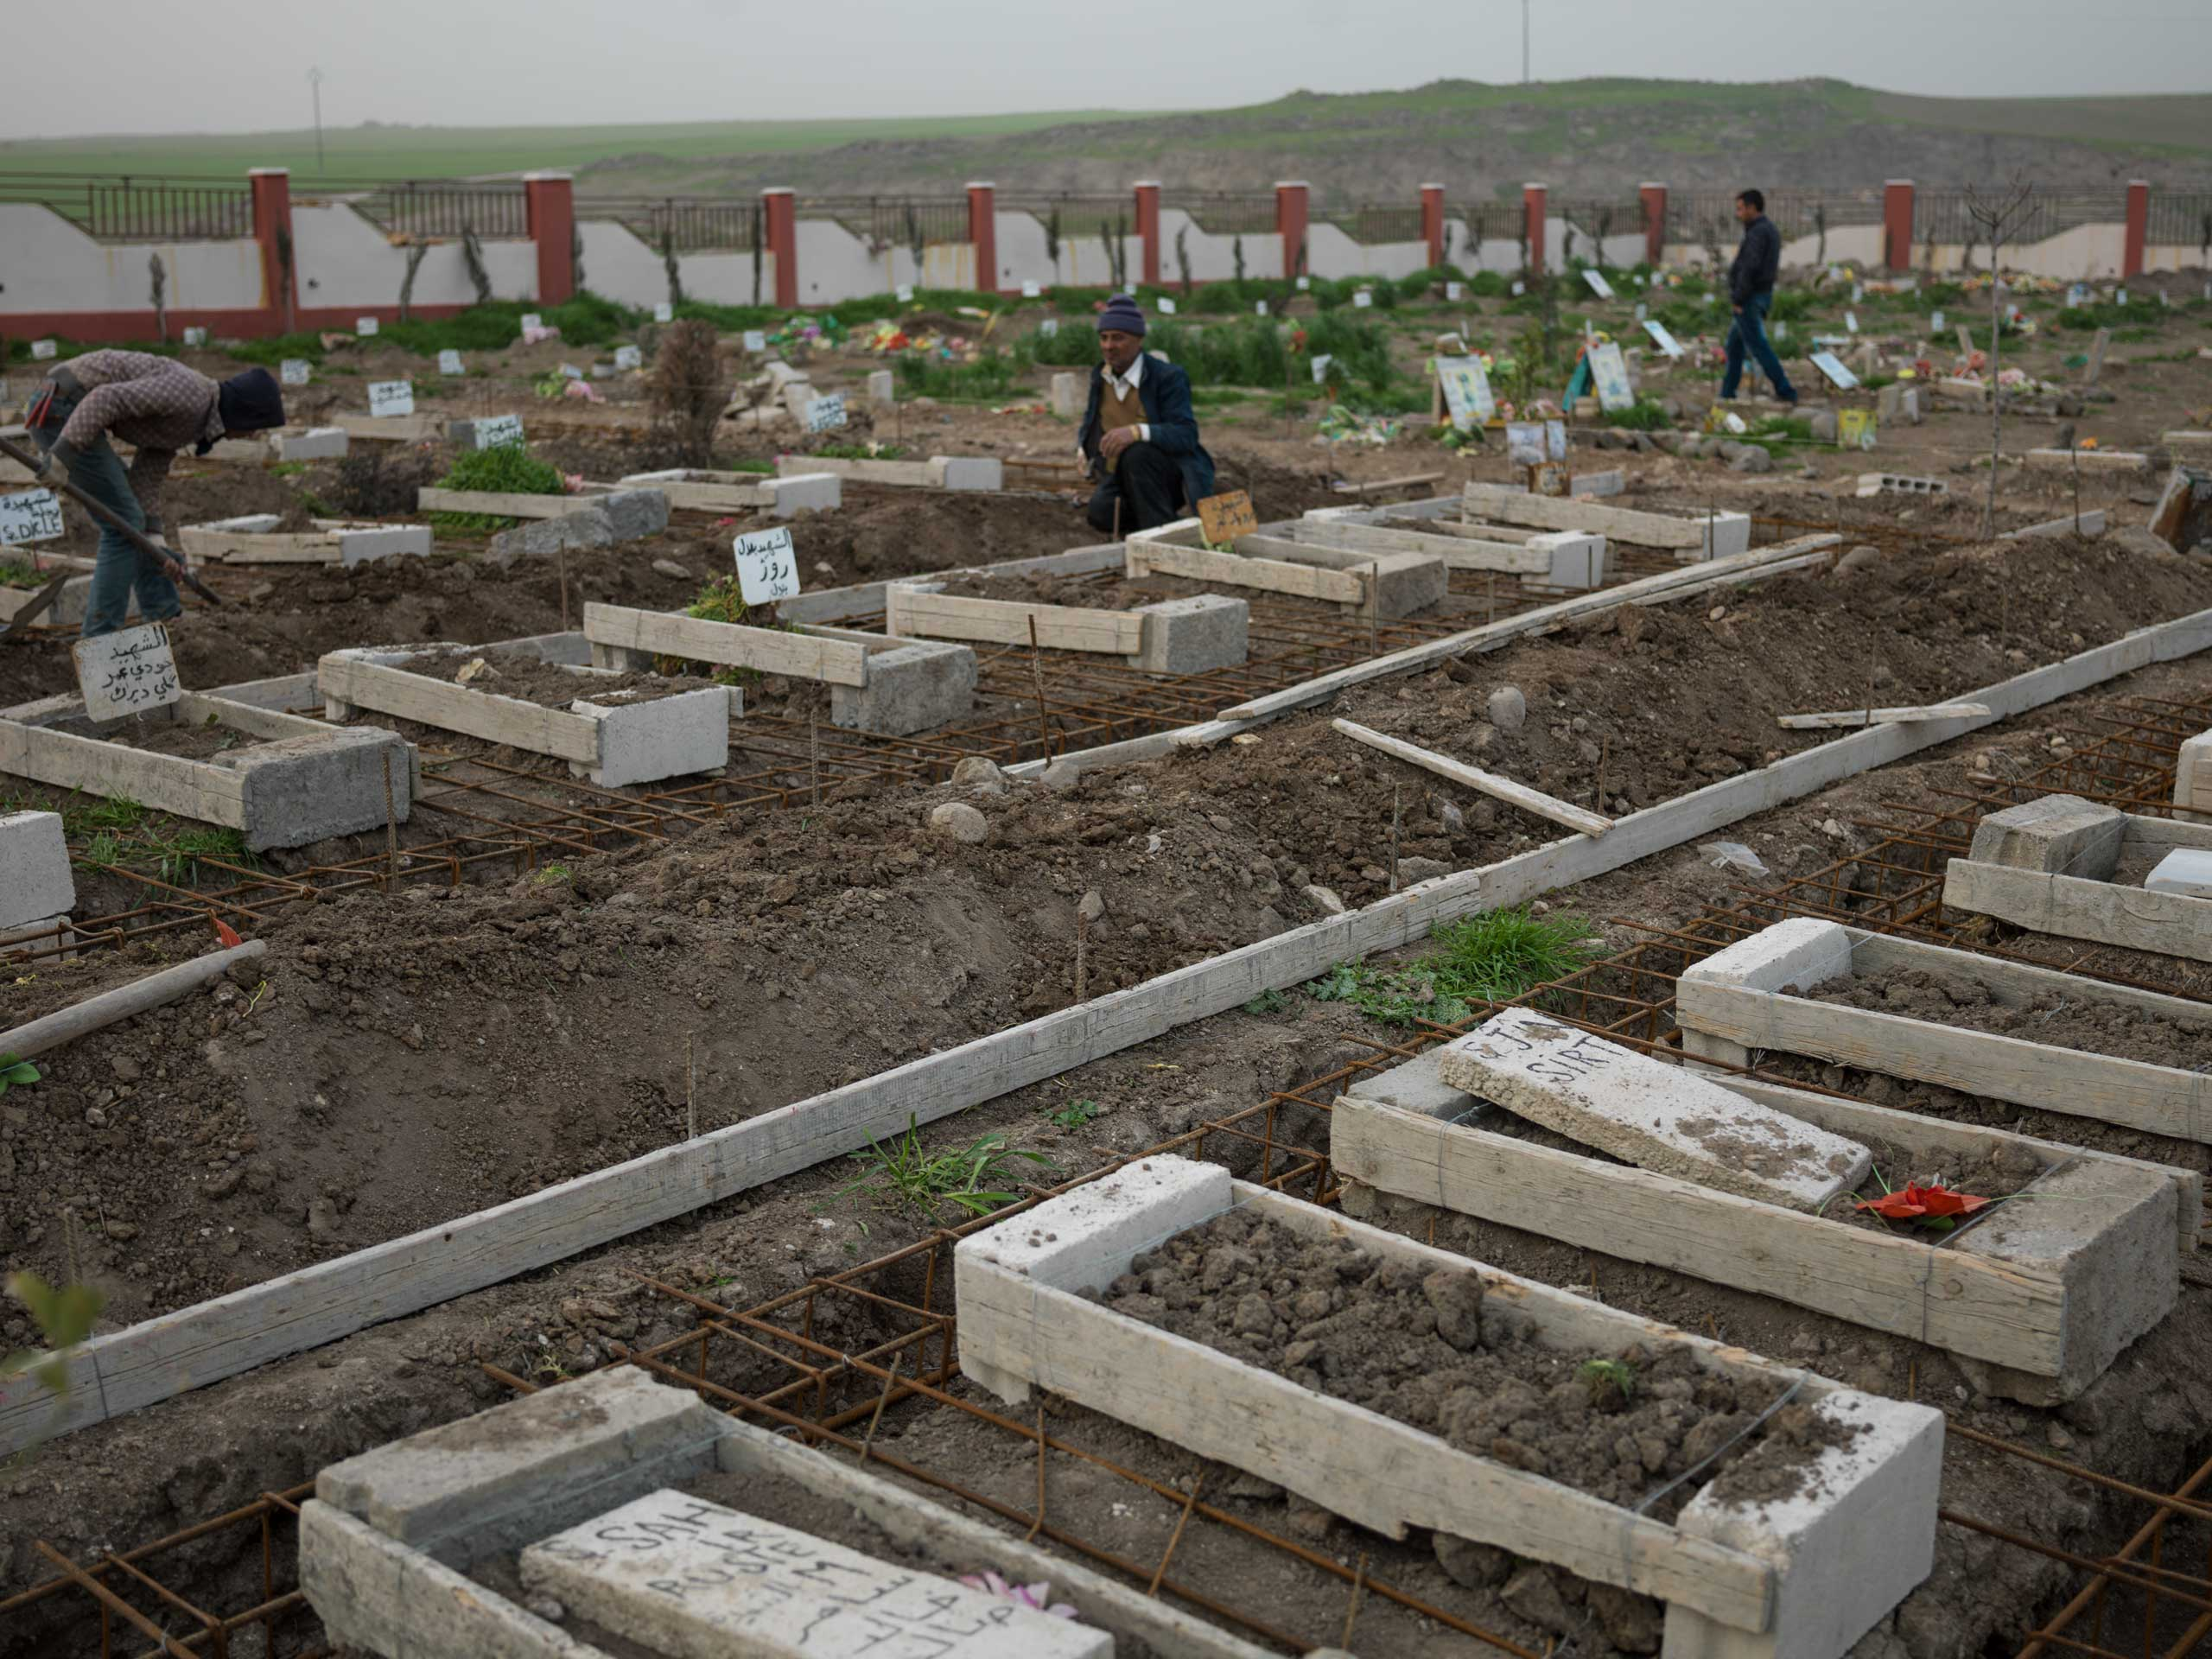 in Syria, graves of YPJ members who were killed fighting ISIS. In the foreground, female fighters are buried together.